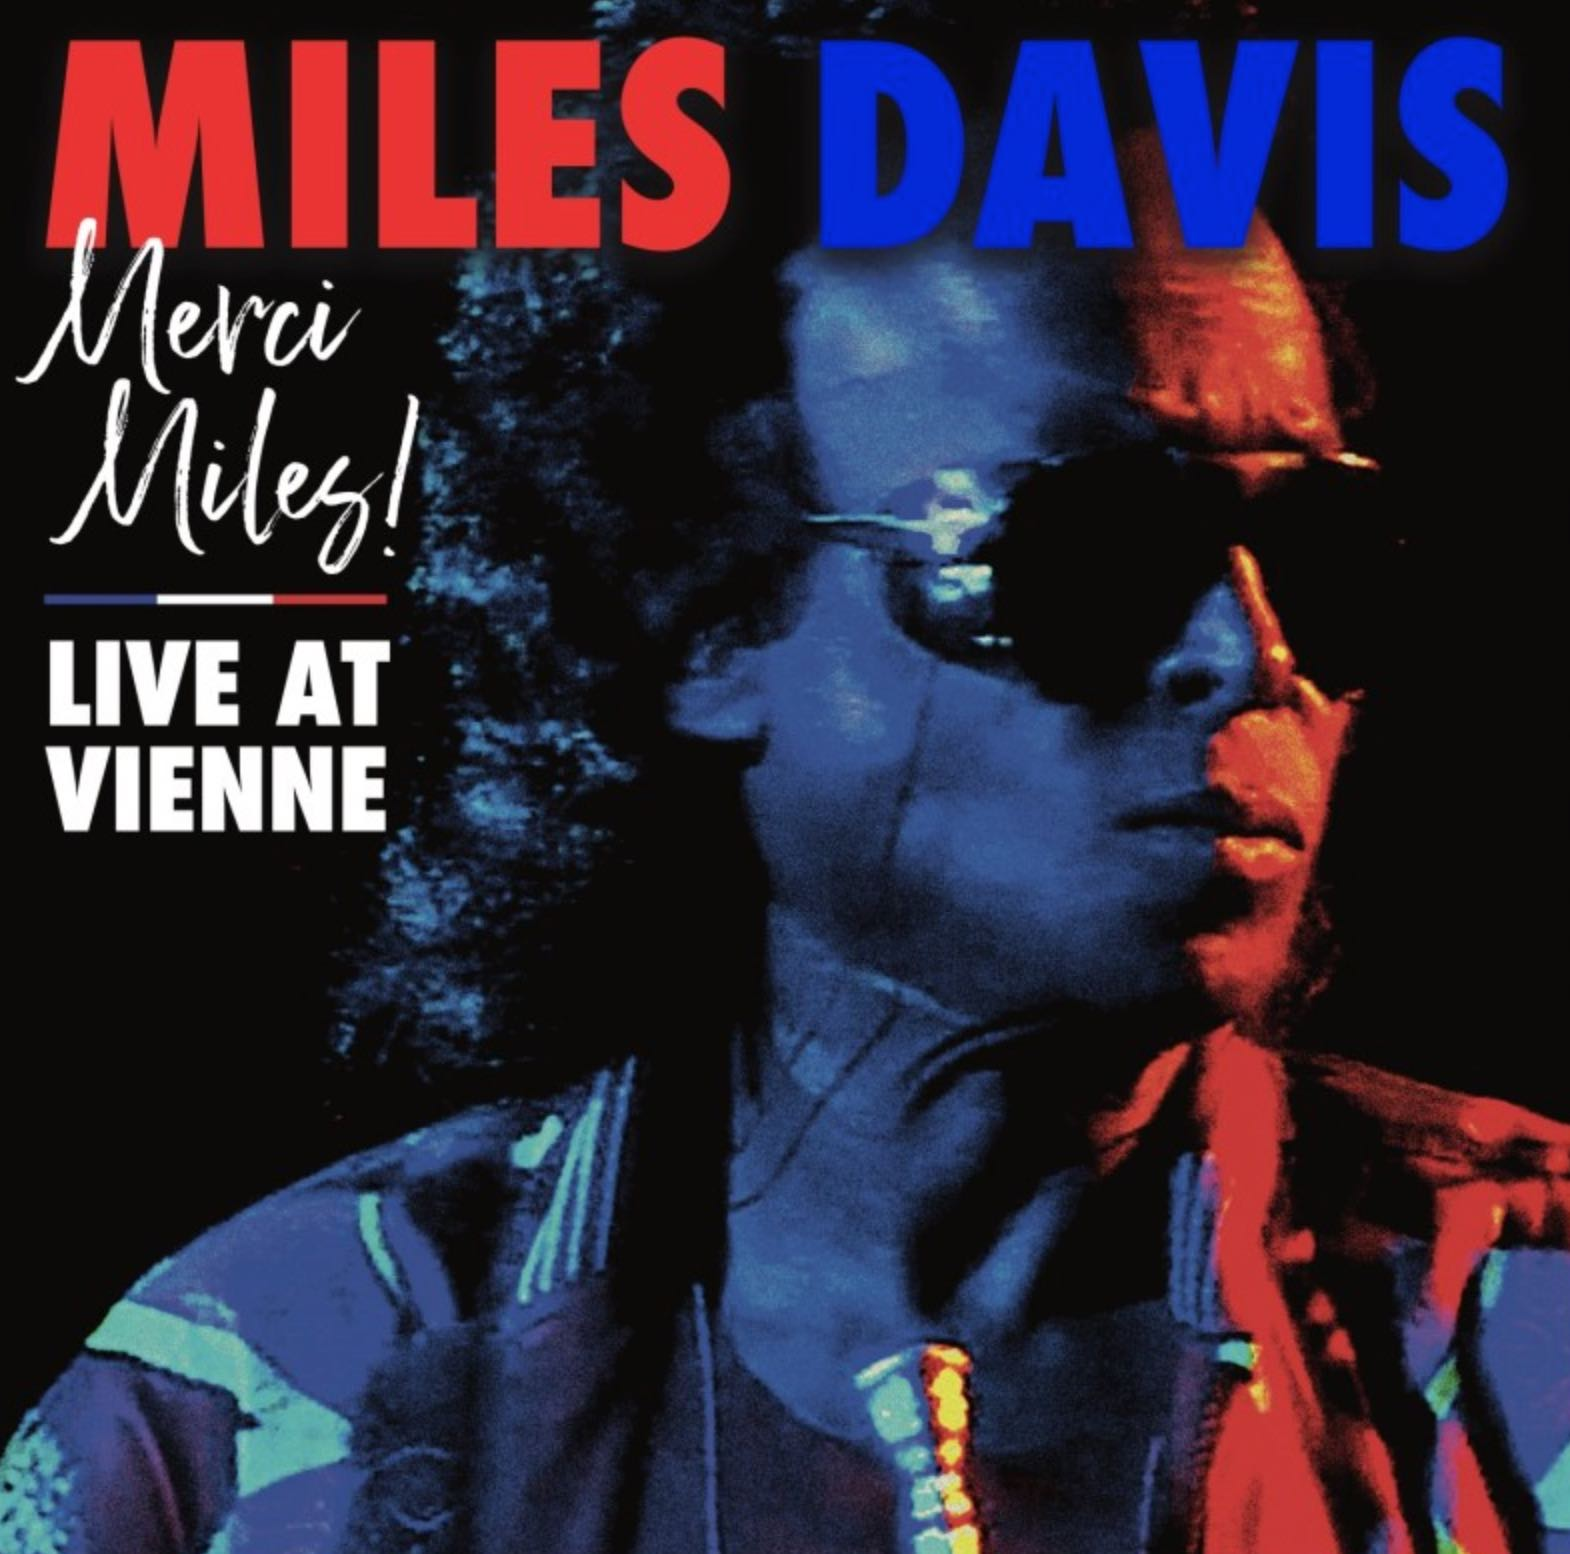 One of Miles Davis's final performances sees official release, includes songs by Prince and Michael Jackson